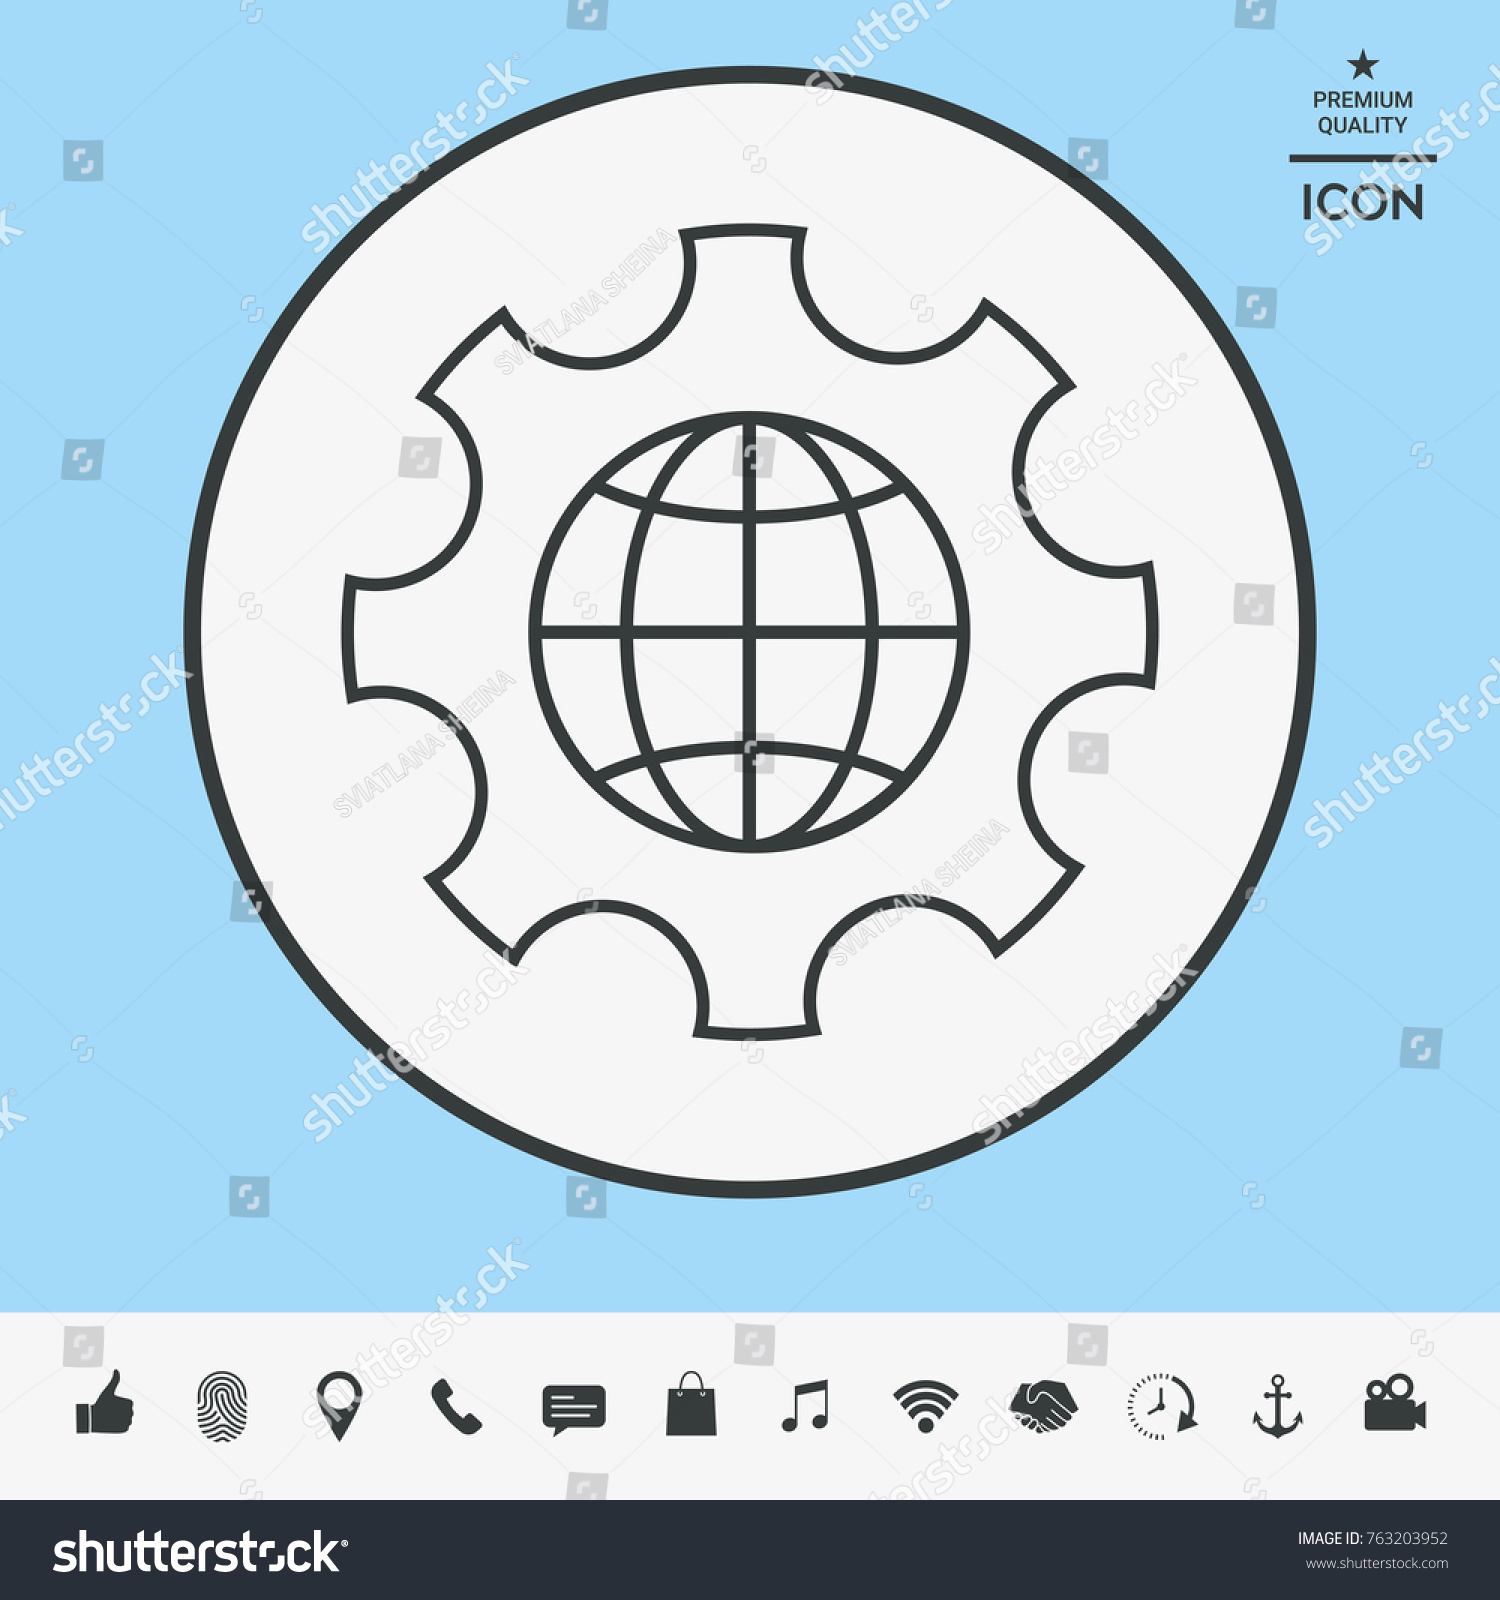 Globe Of The Earth Inside A Gear Or Cog Setting Parameters Global Diagram Id 763203952